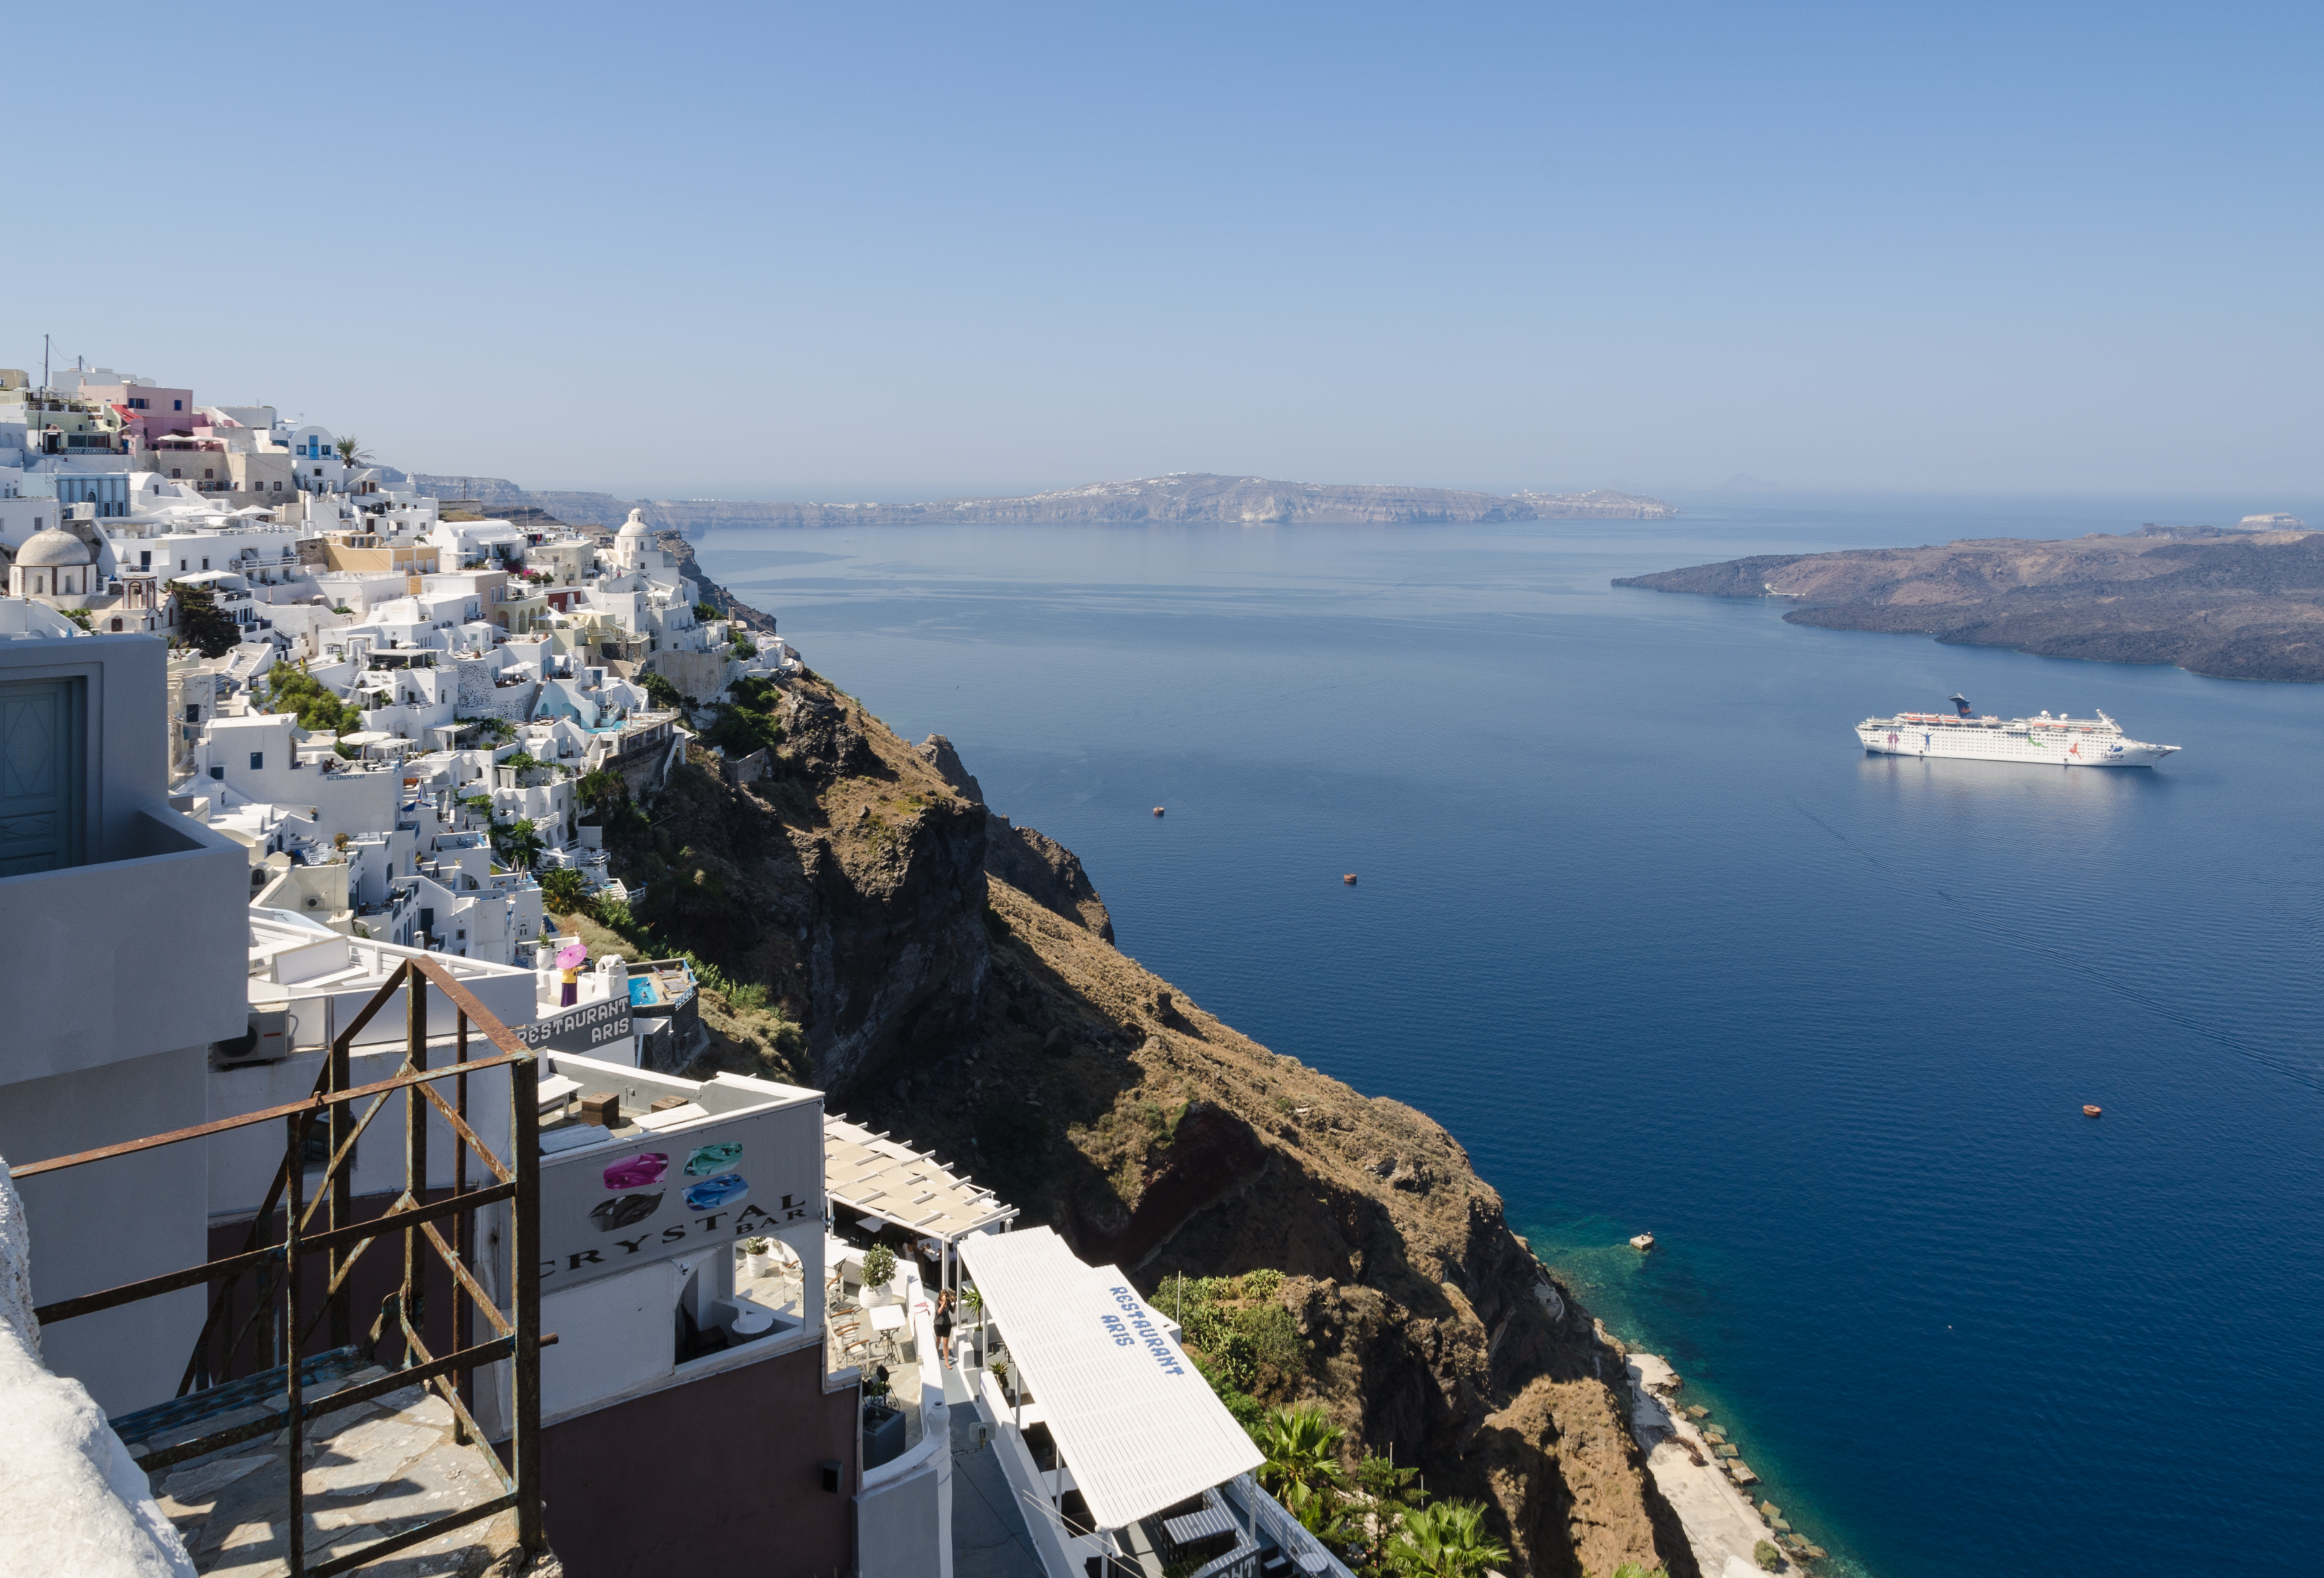 File:Crater rim alley - Fira - Santorini - Greece - 04.jpg